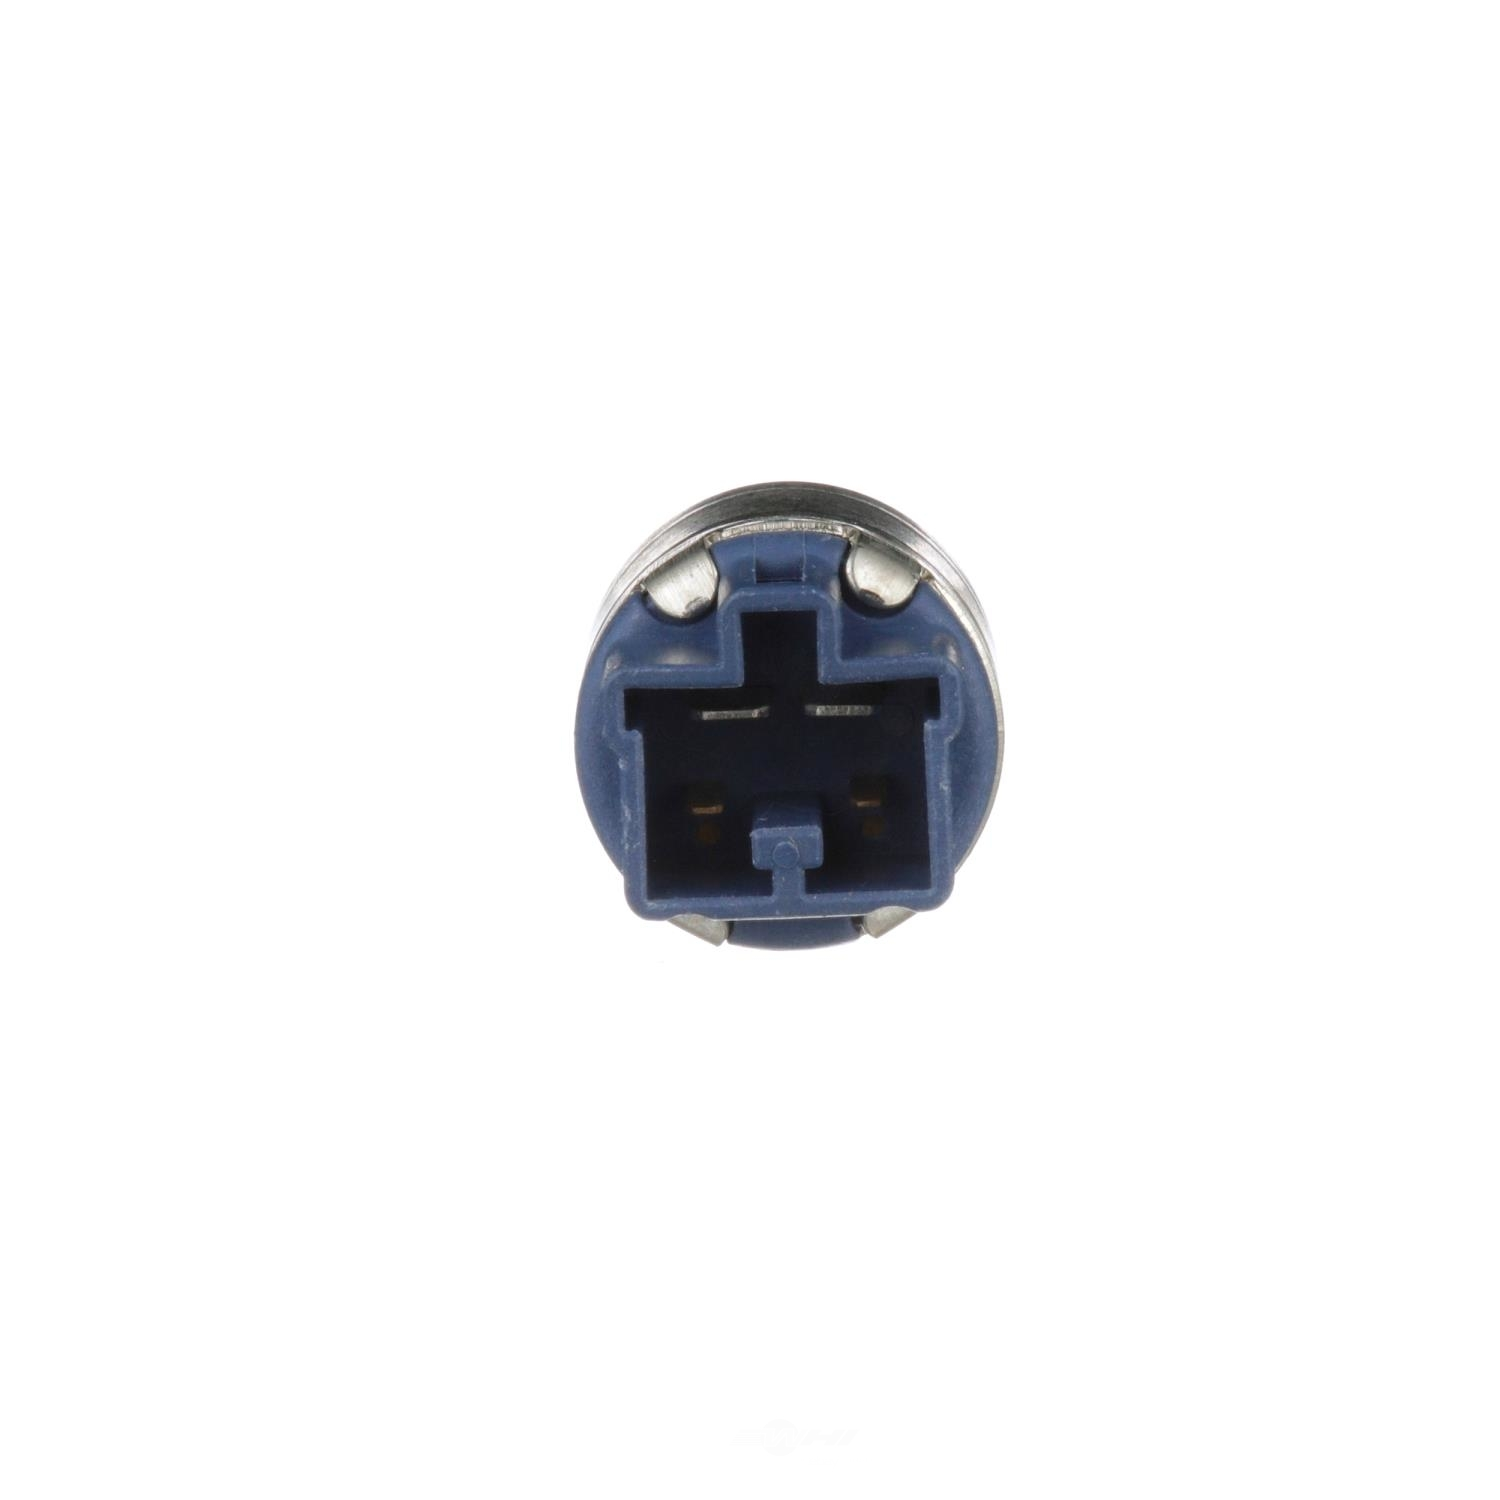 STANDARD T-SERIES - Brake Light Switch - STT SLS203T